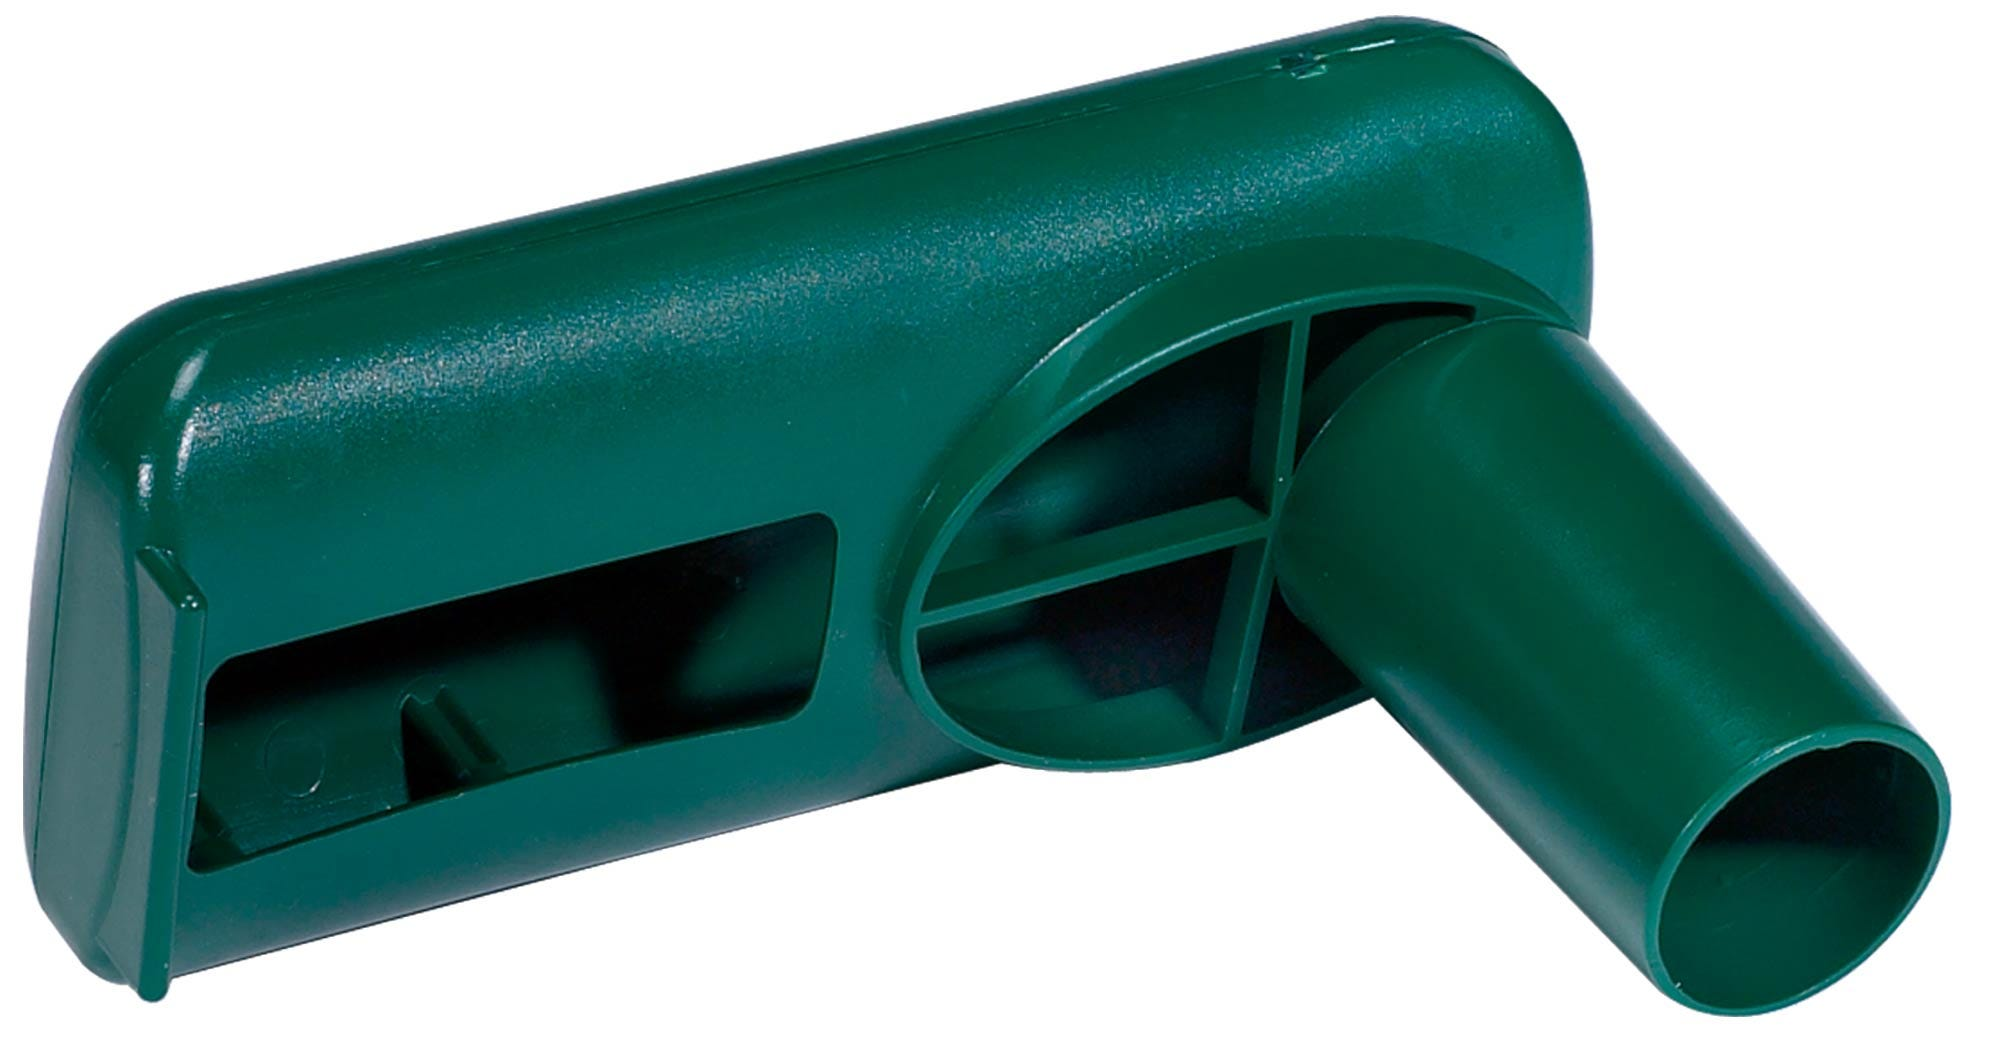 Gutter Pump for Downspouts (set of 2)